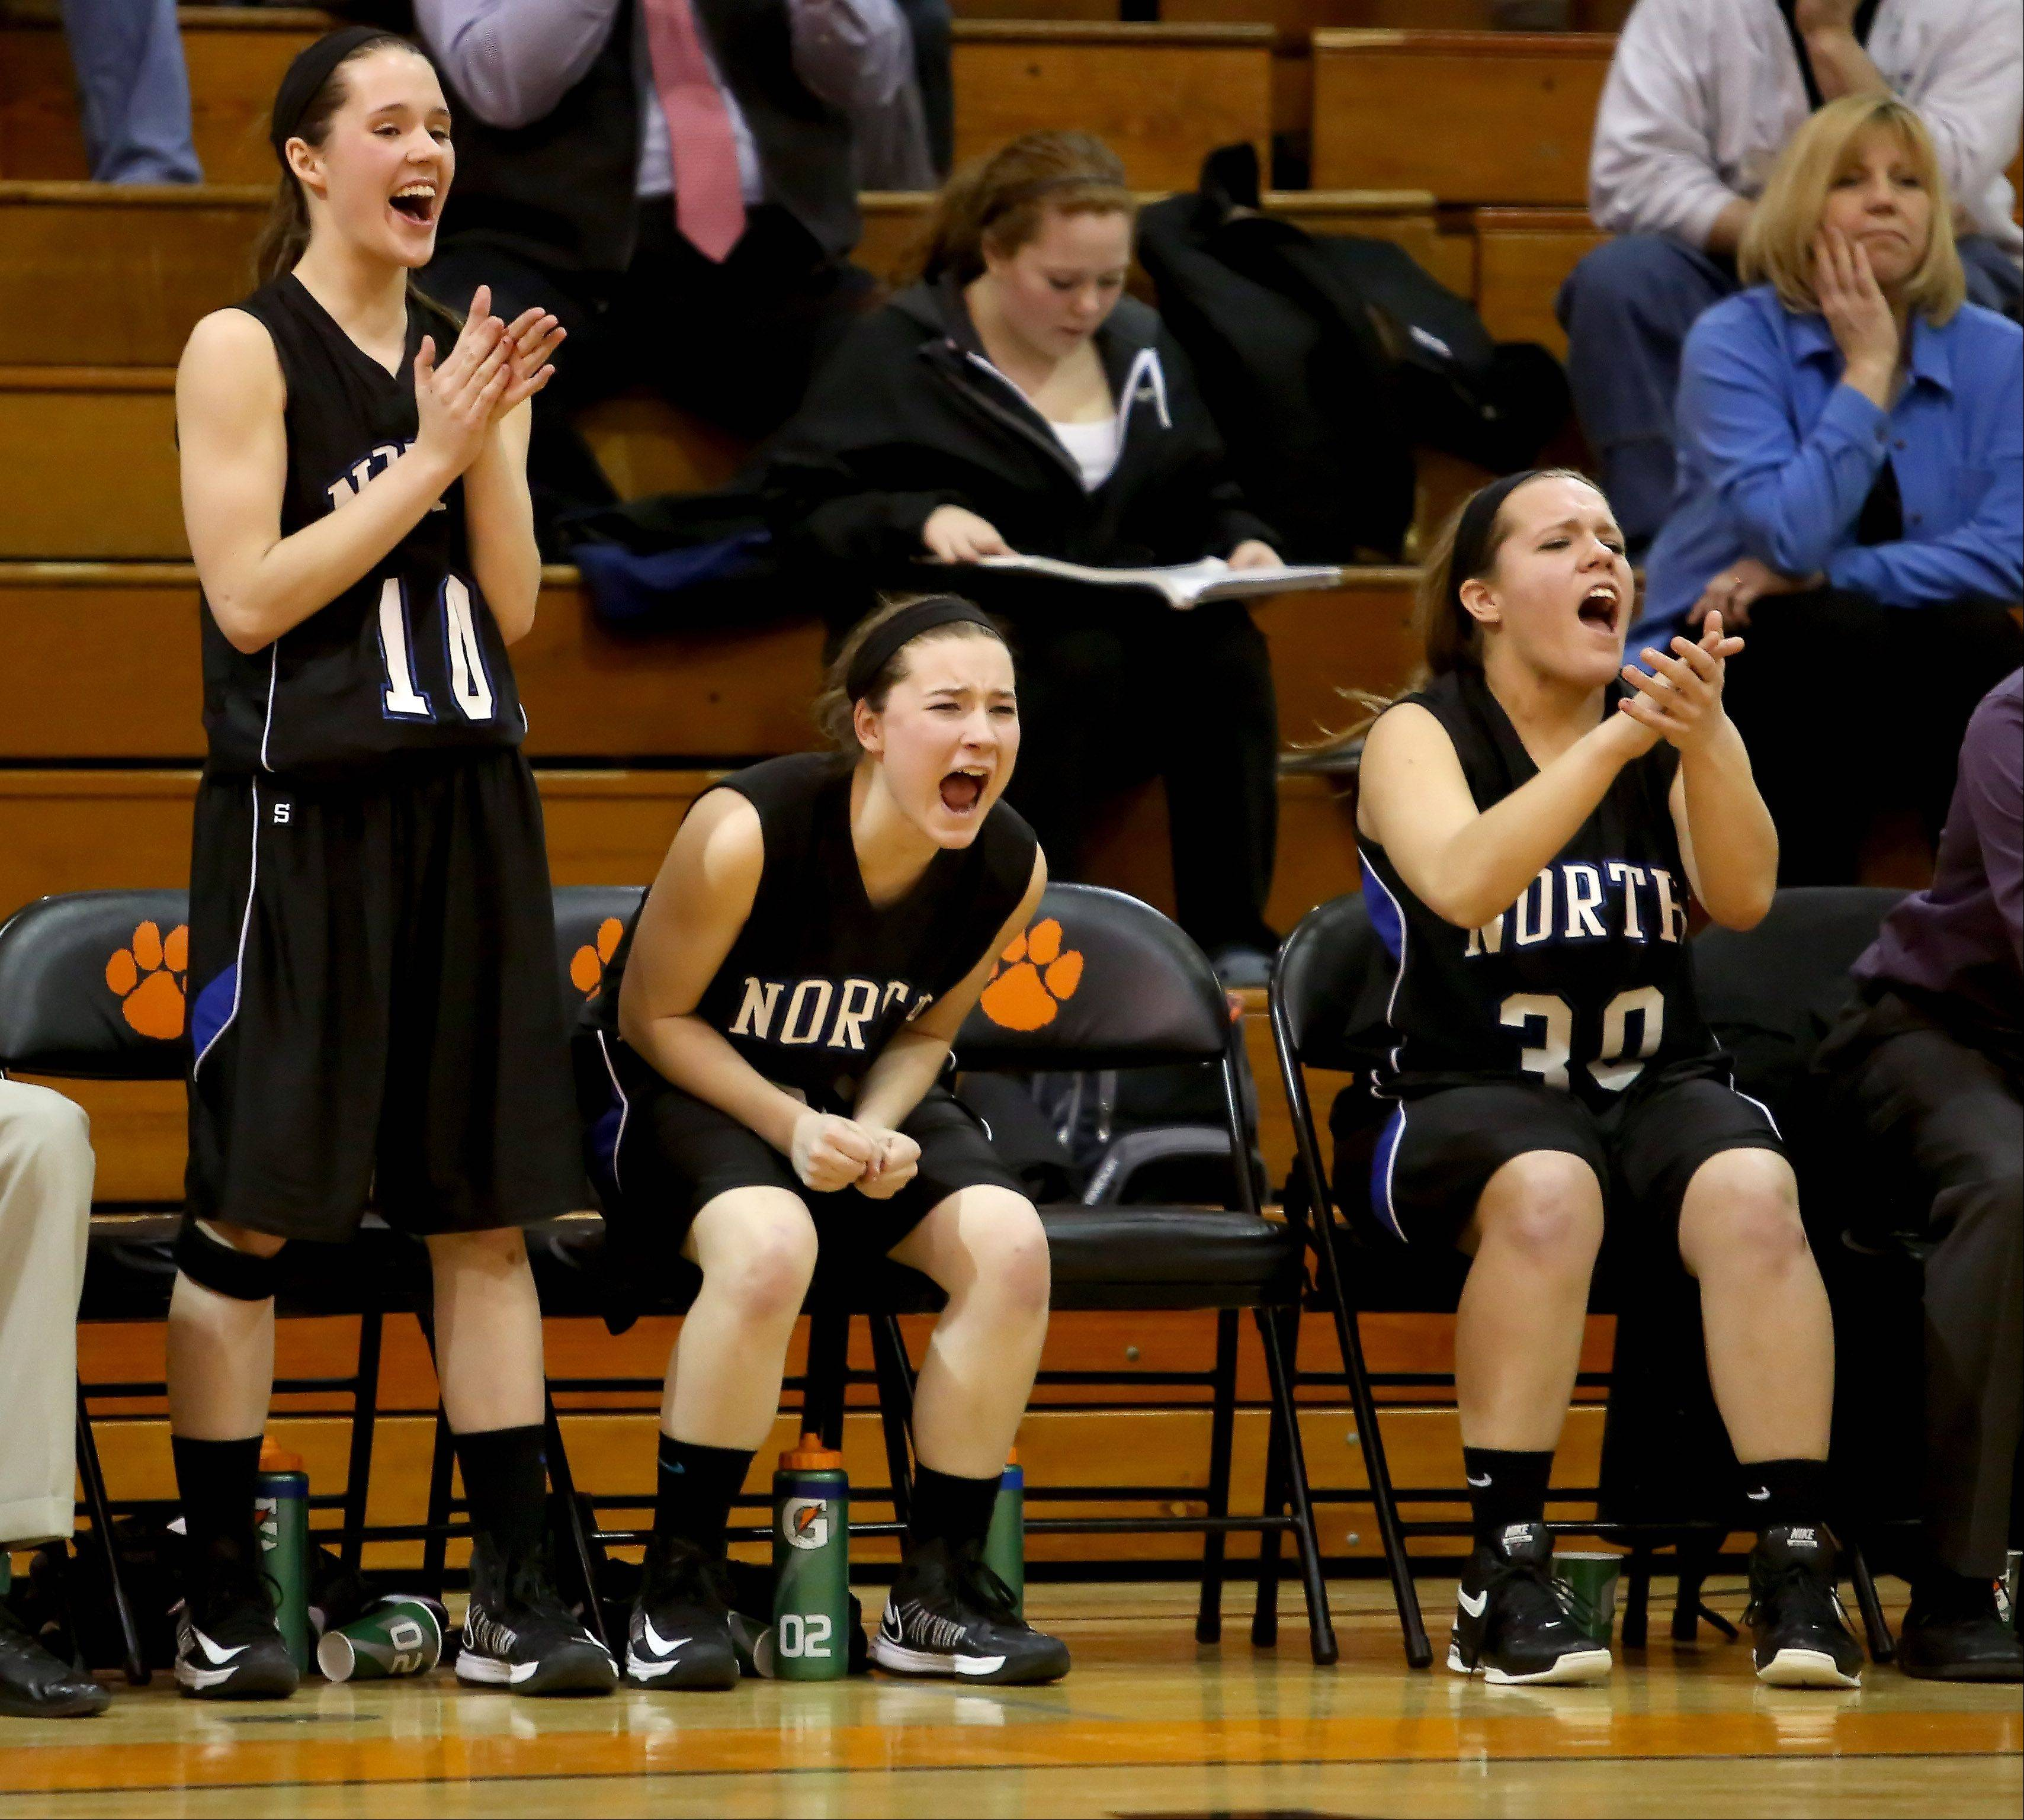 The St. Charles North bench reacts to a basket made during their win over Glenbard West in Class 4A regional quarterfinals at Wheaton Warrenville South on Monday.